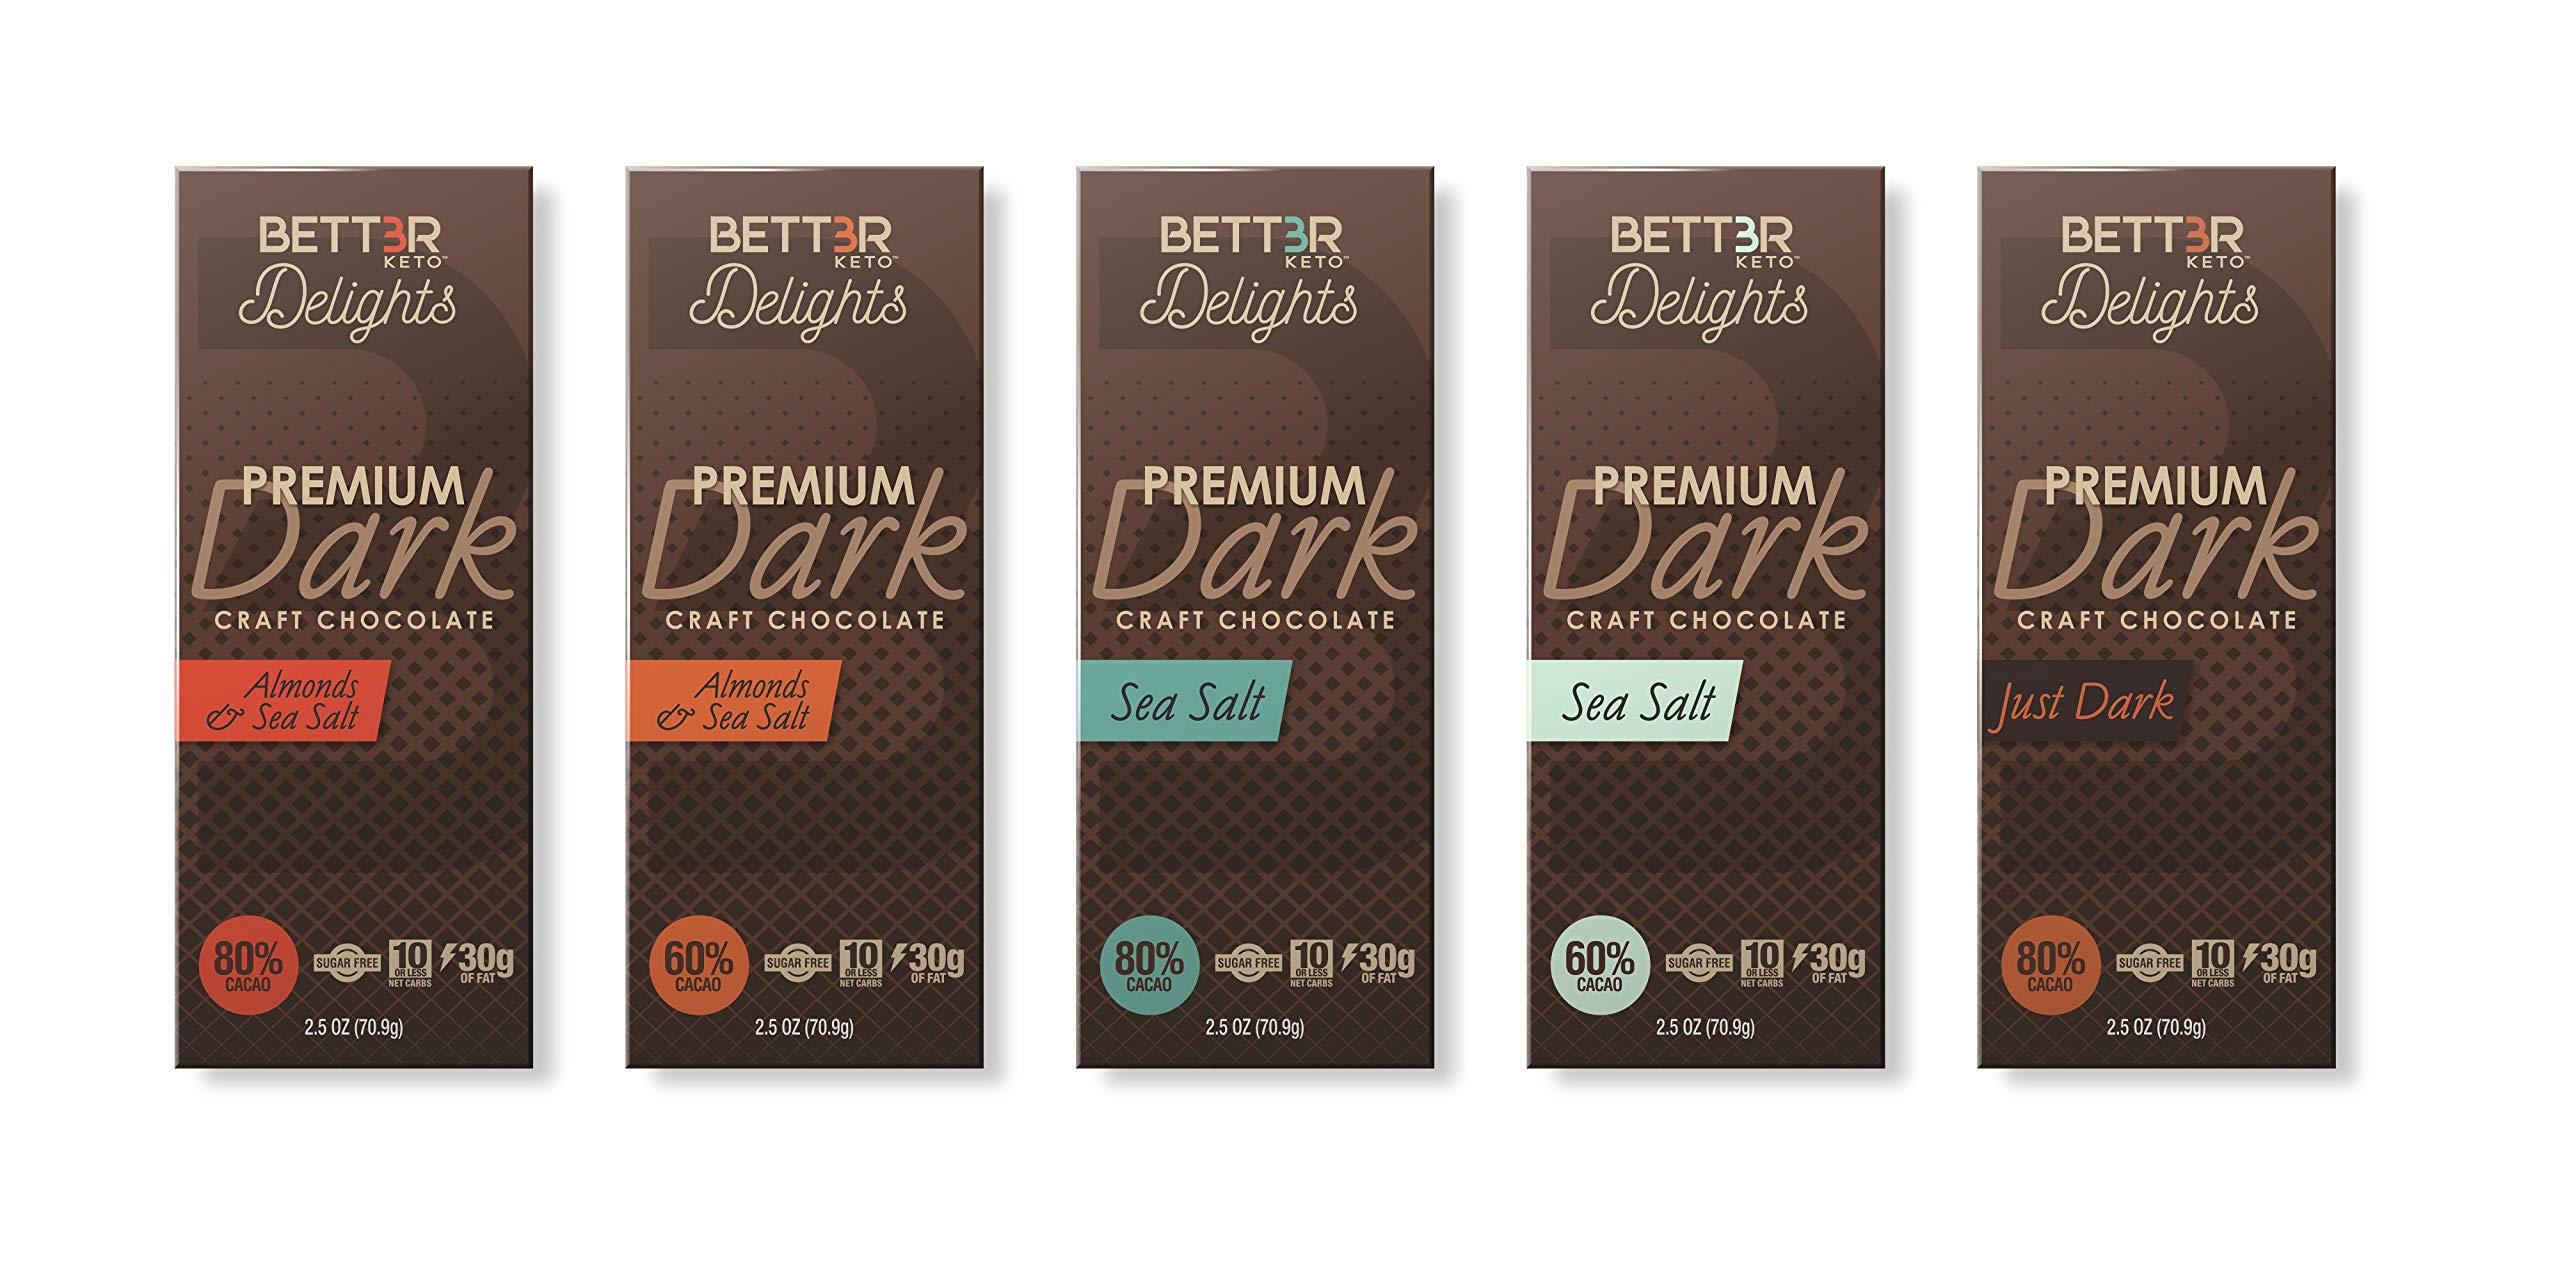 BETTER KETO Snacks 80% Dark Chocolate Bars with Sea Salt | Sugar & Gluten Free Healthy Snacks | Low Carb High Fat Low Calorie Keto, Paleo & Vegan Diet Dessert | 2.5 Oz 24-Pack by BETT3R KETO (Image #4)